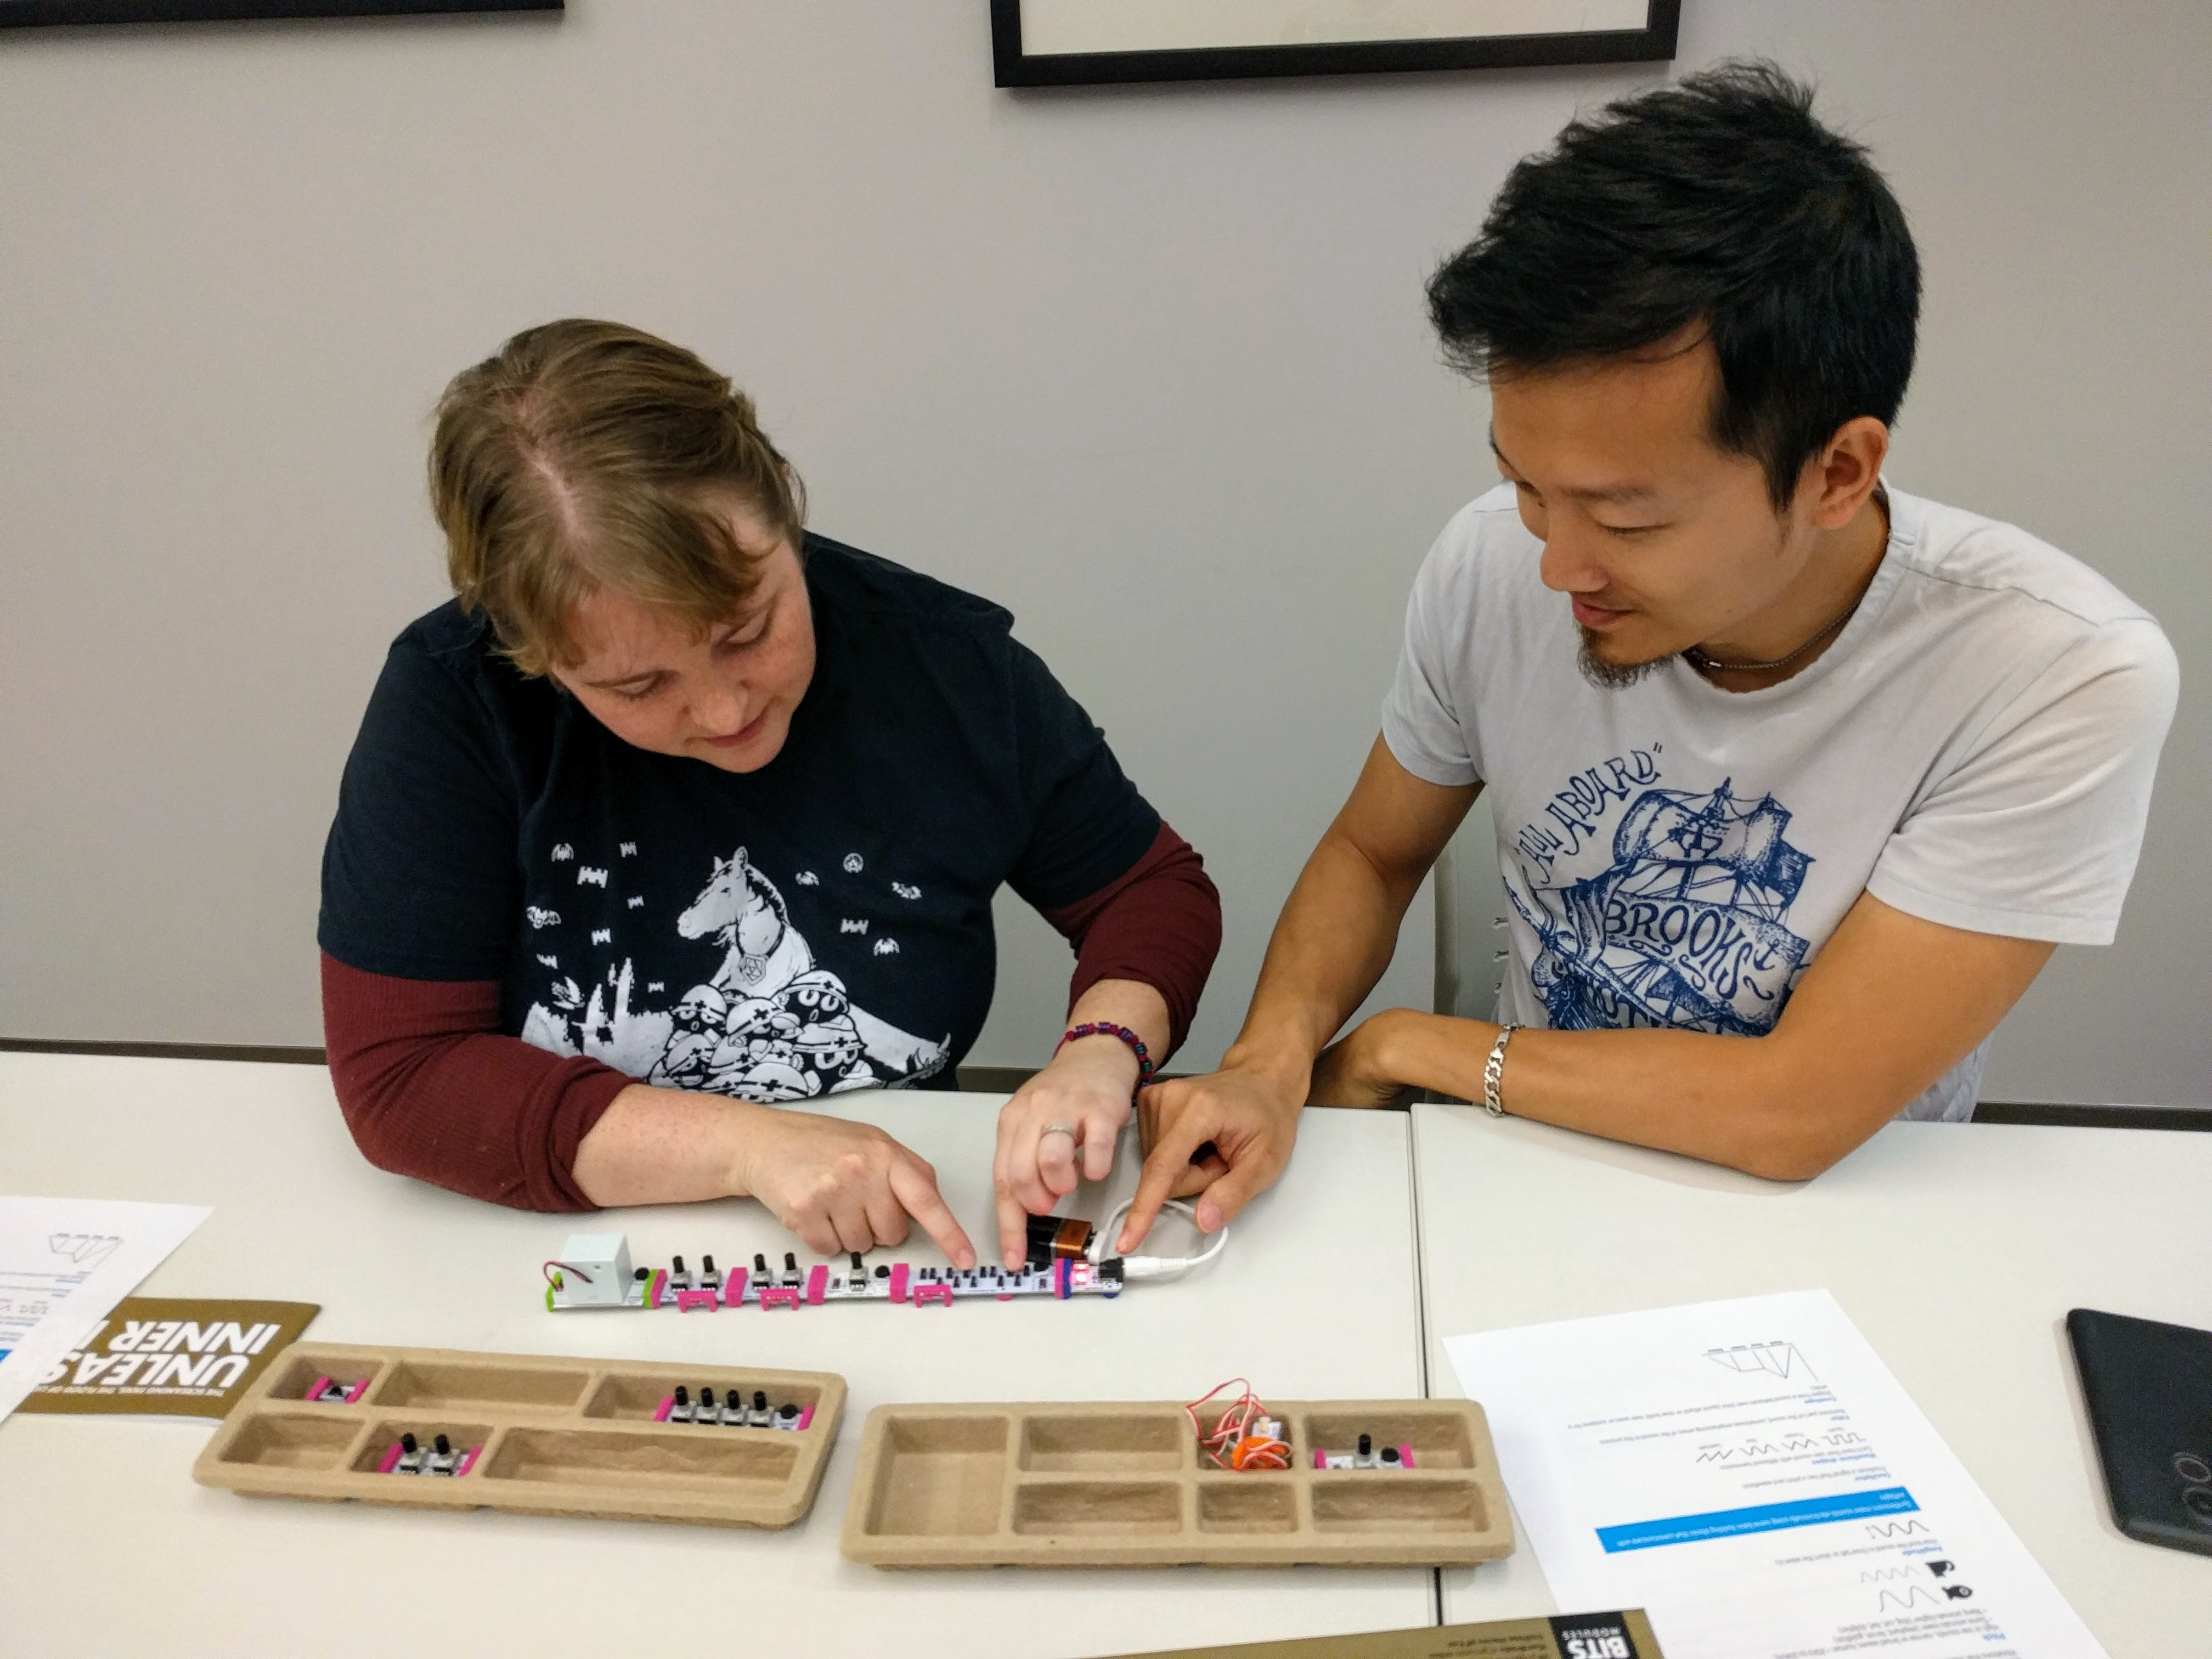 Two students play with littleBits synthesizer kits.